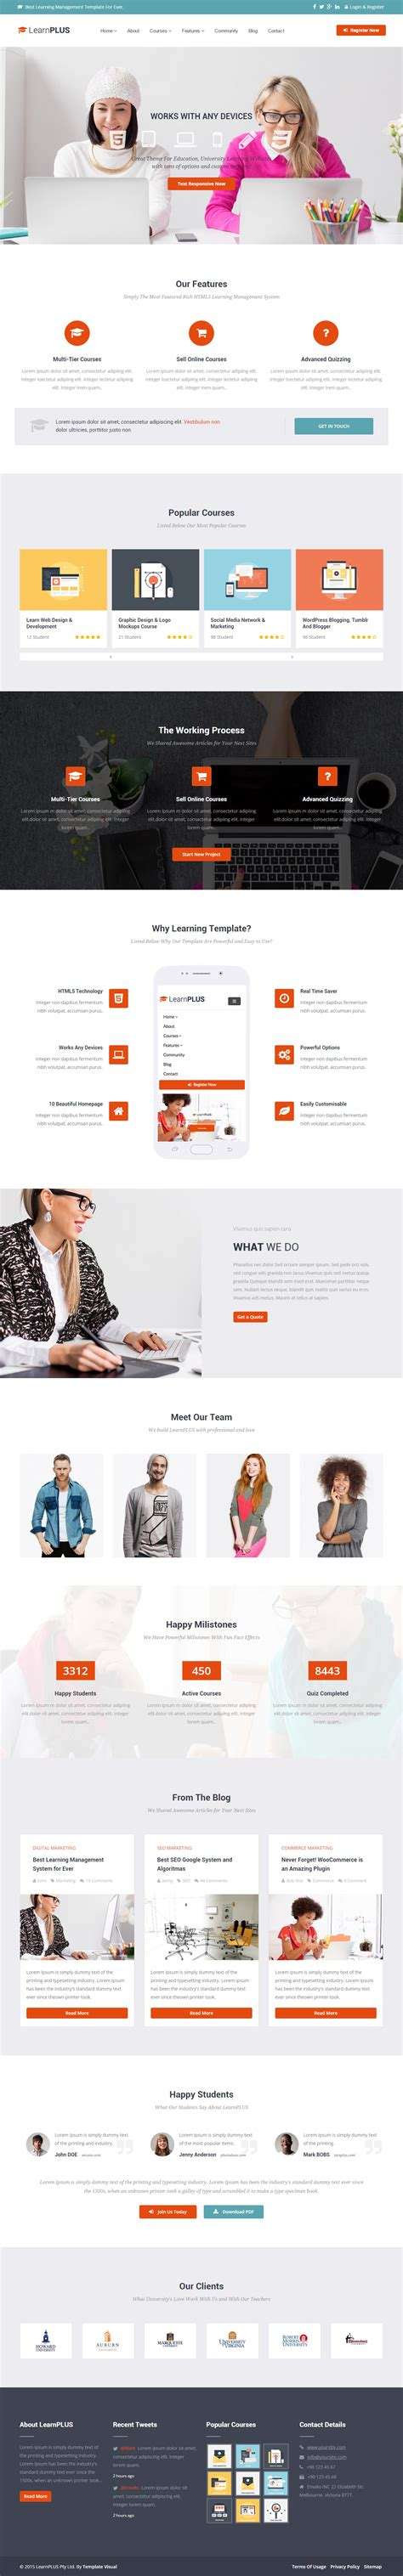 html education templates free 5 best responsive html5 school education templates in 2015 responsivemiracle